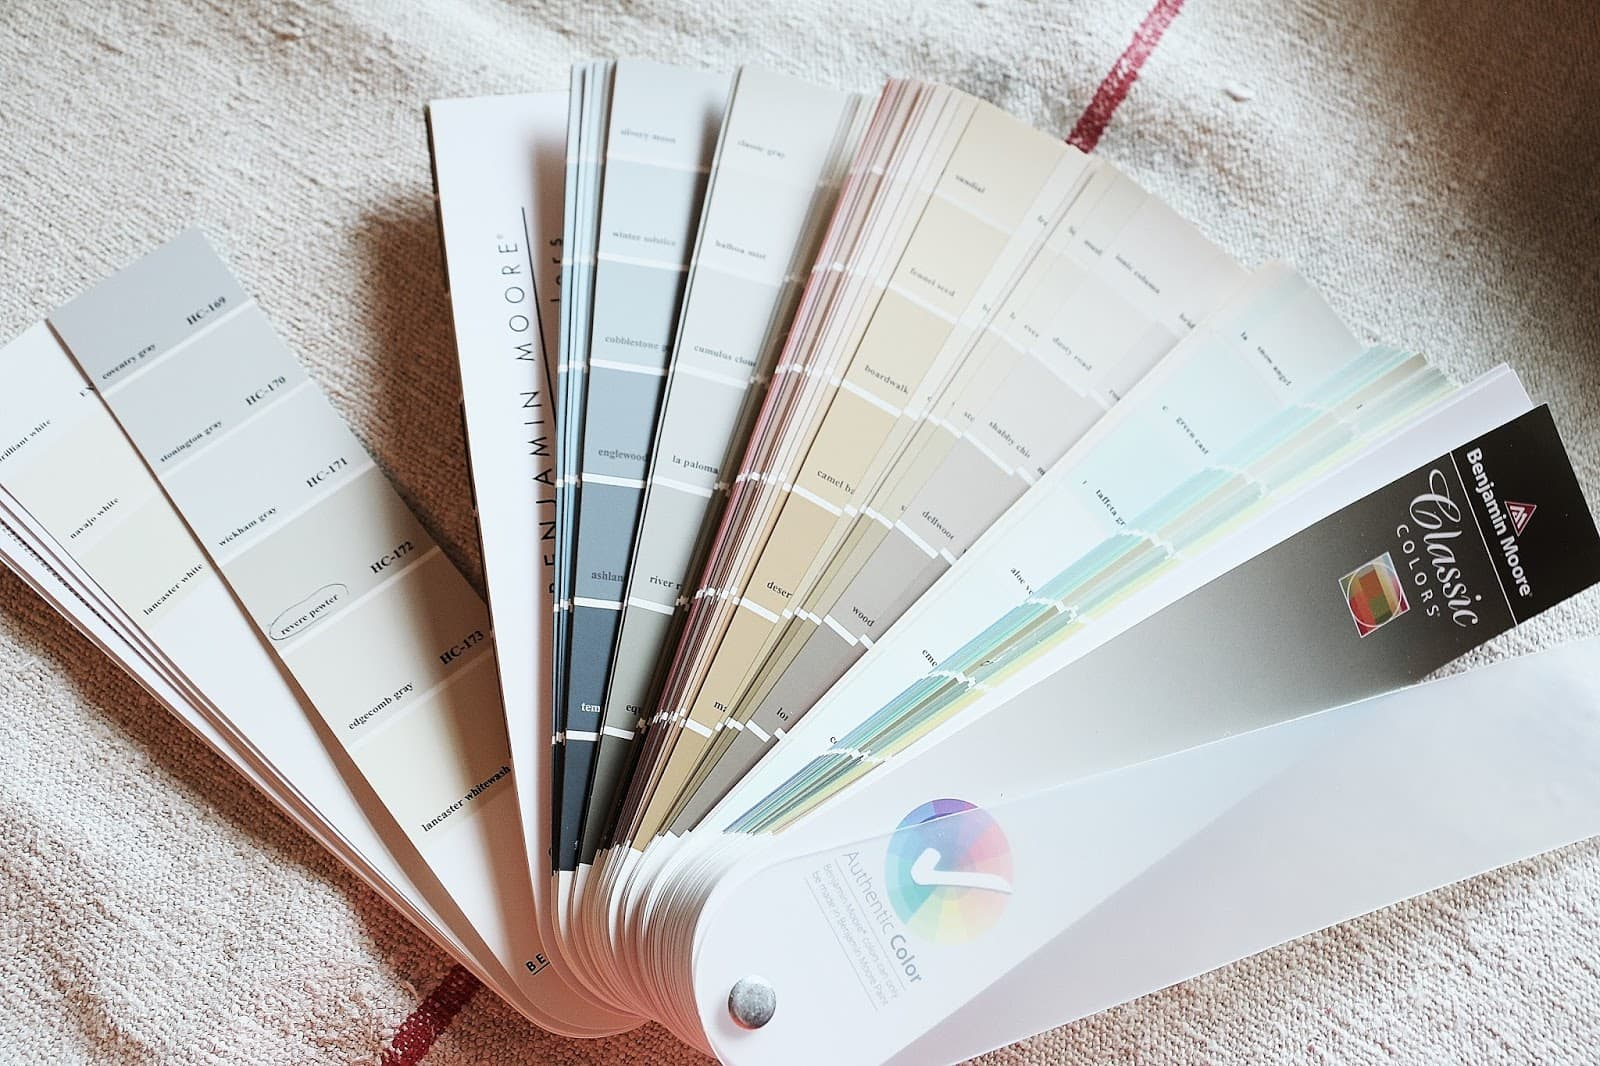 Show Your color selection To Your Residential Painters